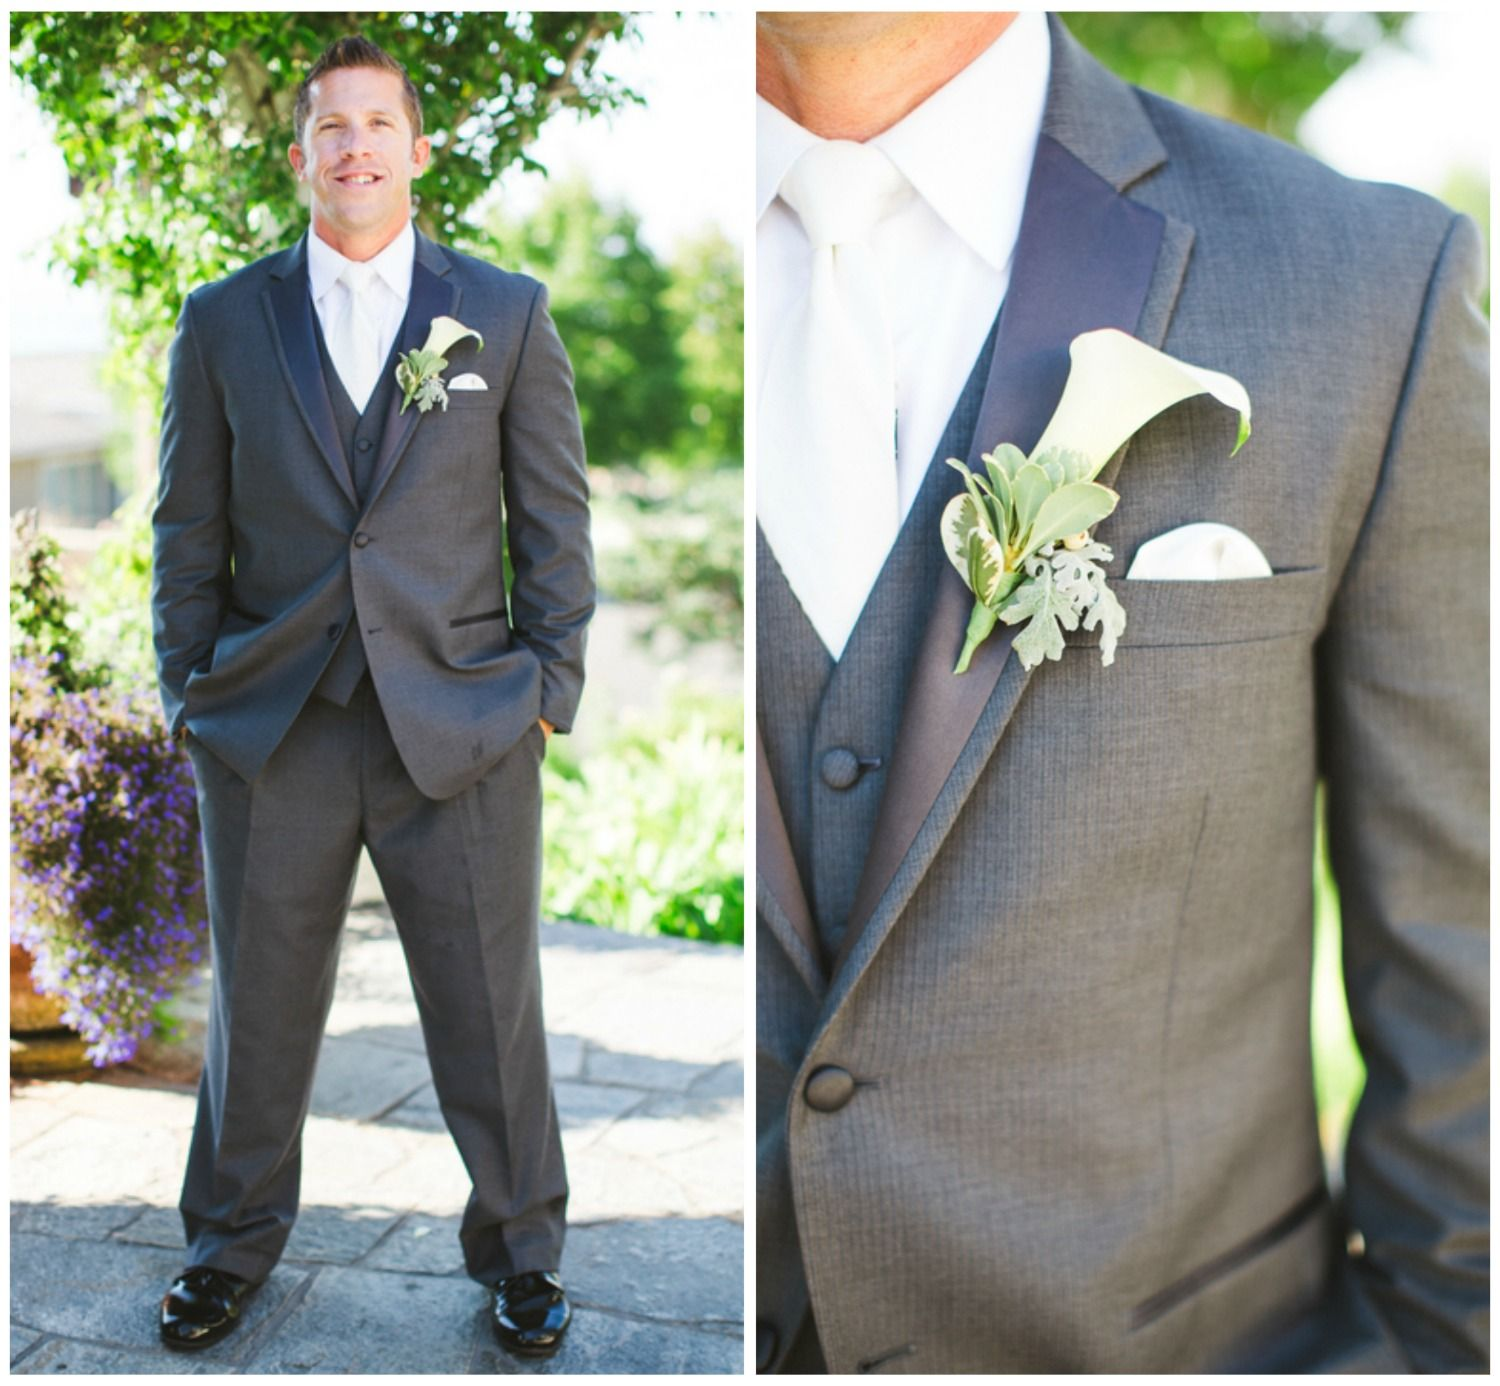 Groom in Grey Suit with a White Lily Boutonniere | Suits ...